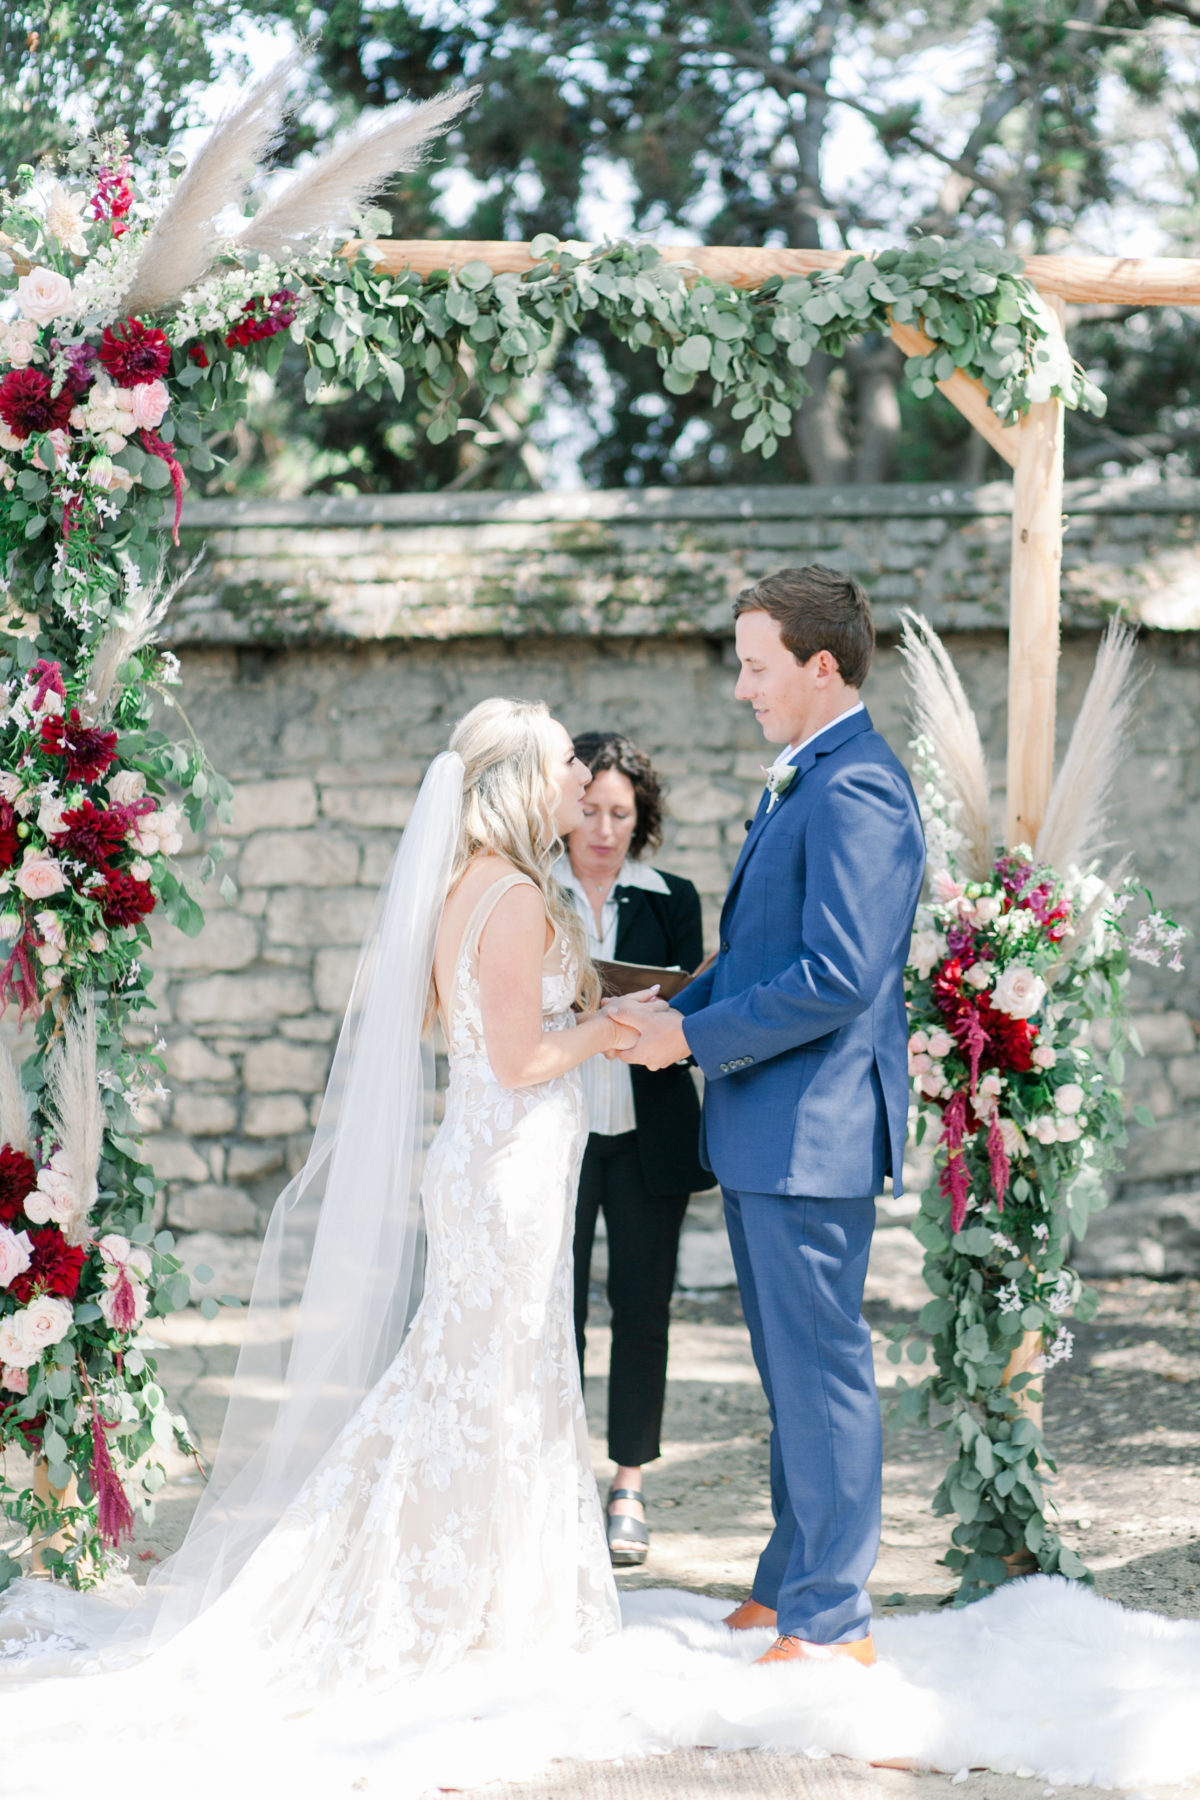 Ceremony at The Barns in Monterey California